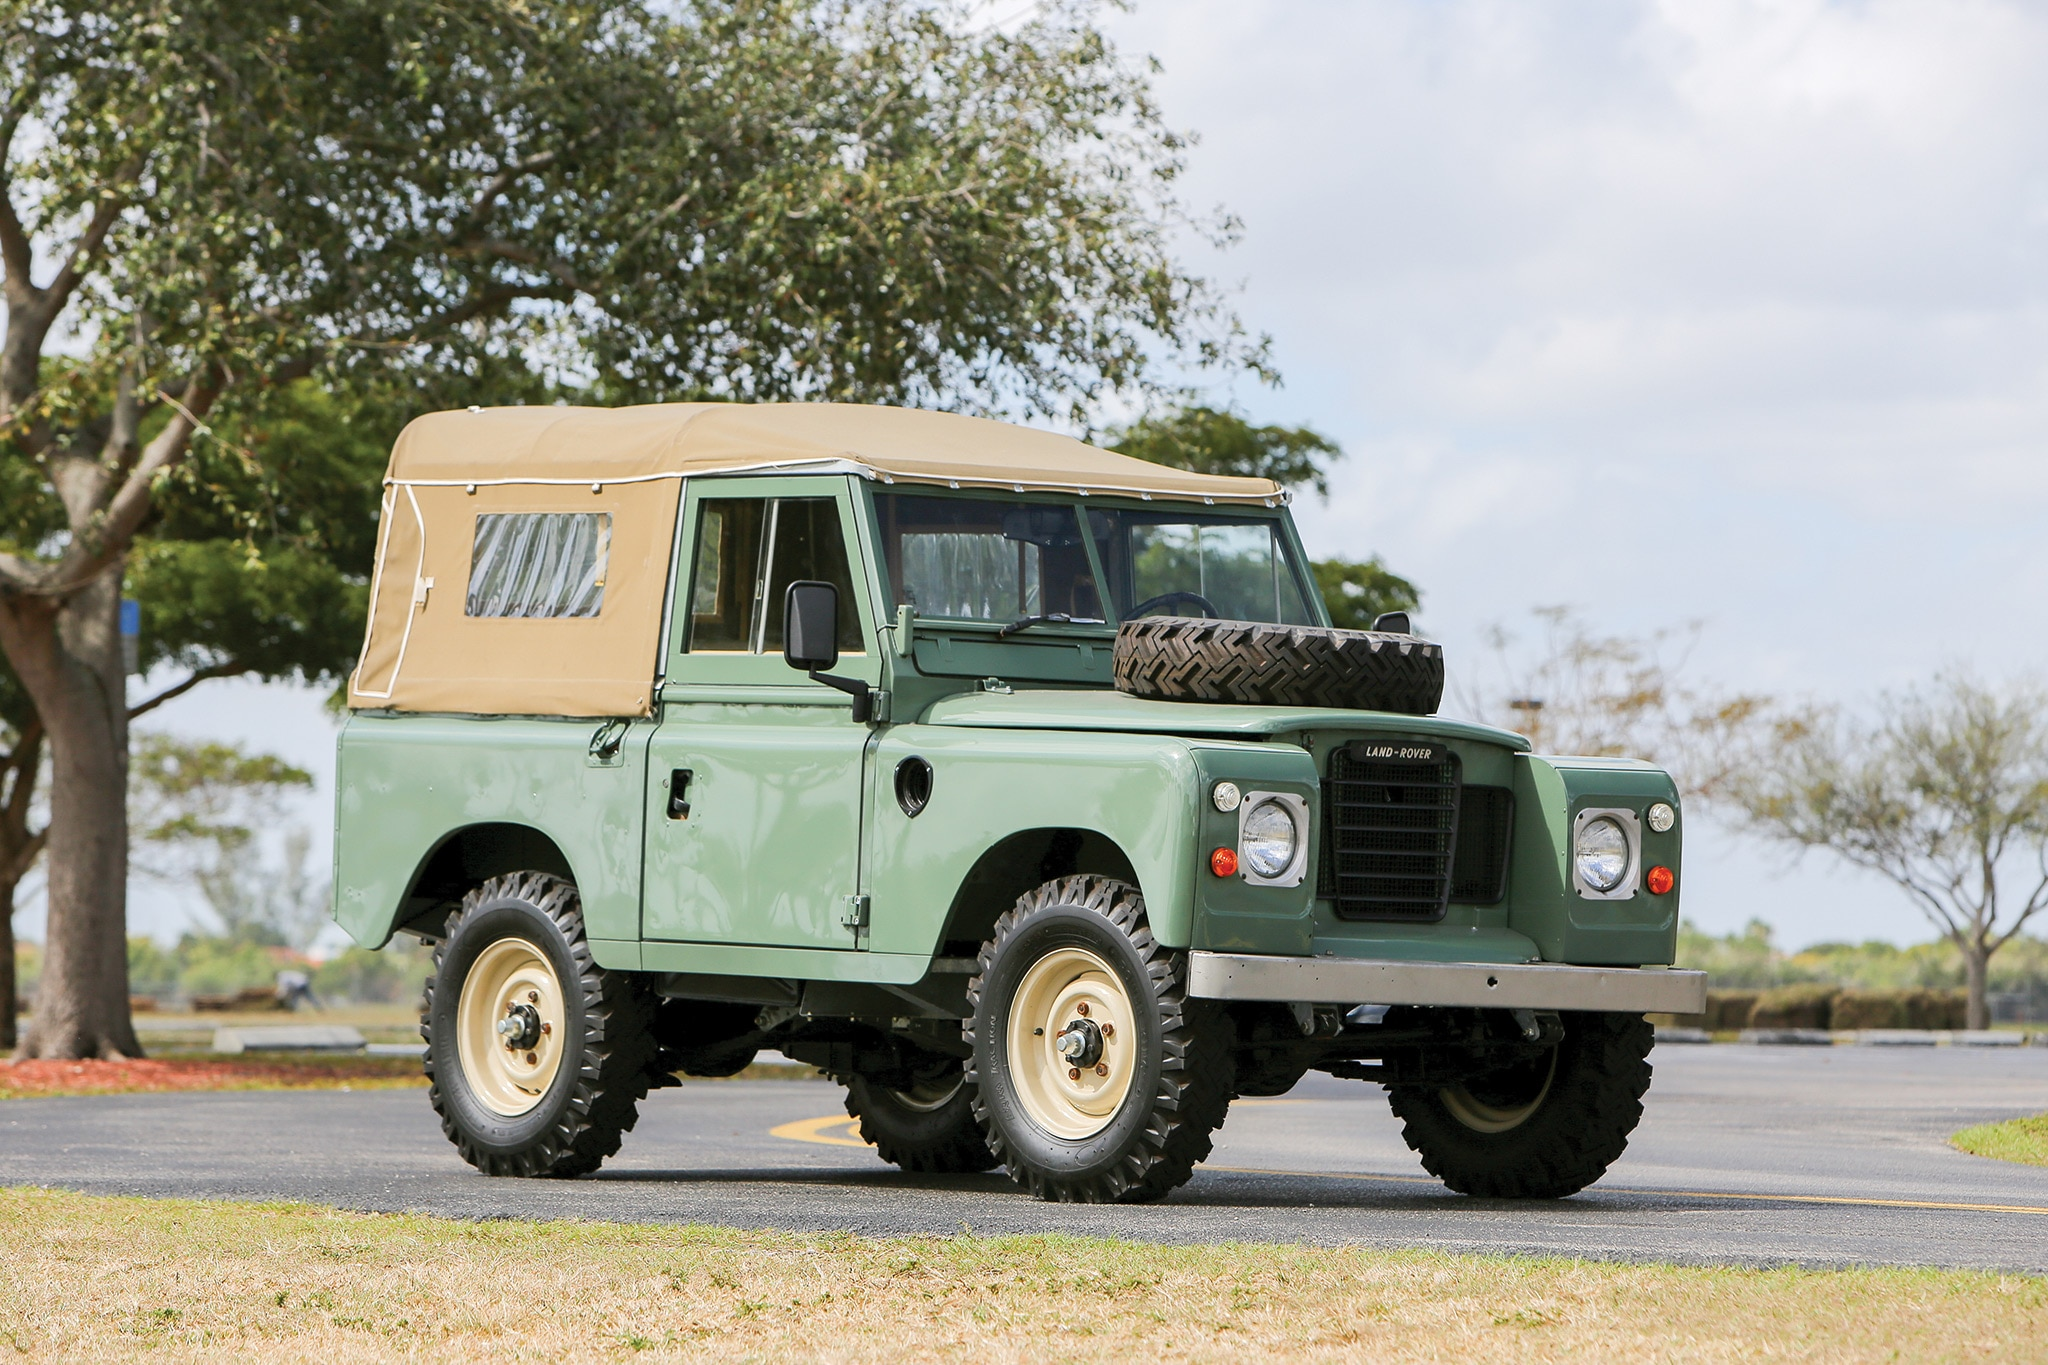 1973 Land Rover 88 Series III